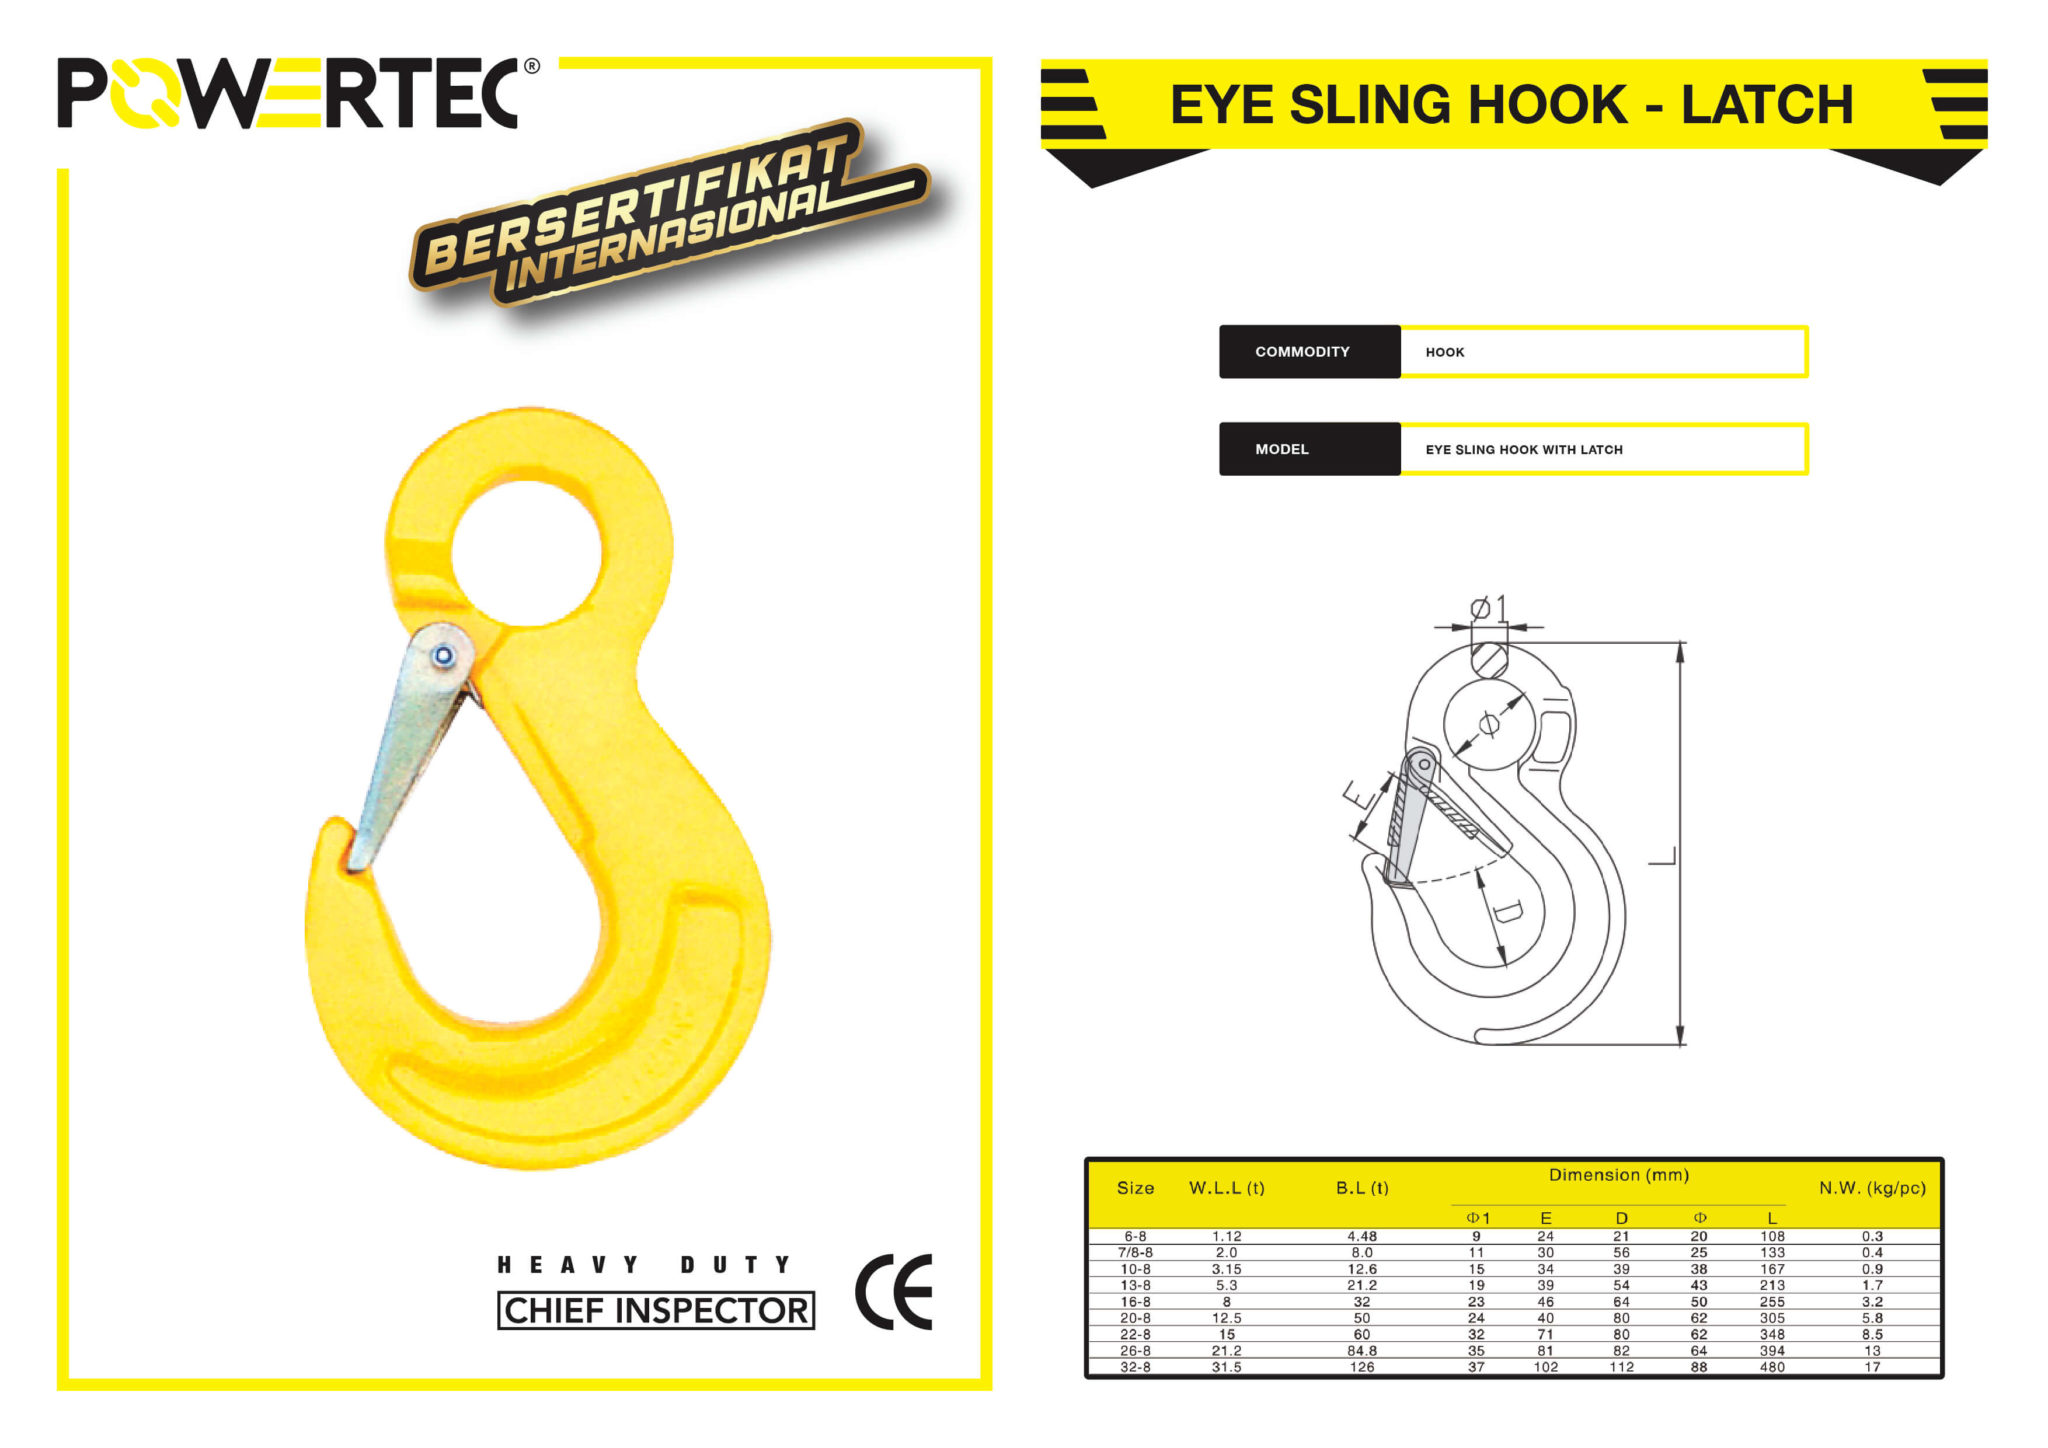 POWERTEC EYE SLING HOOK WITH LATCH BROCHURE